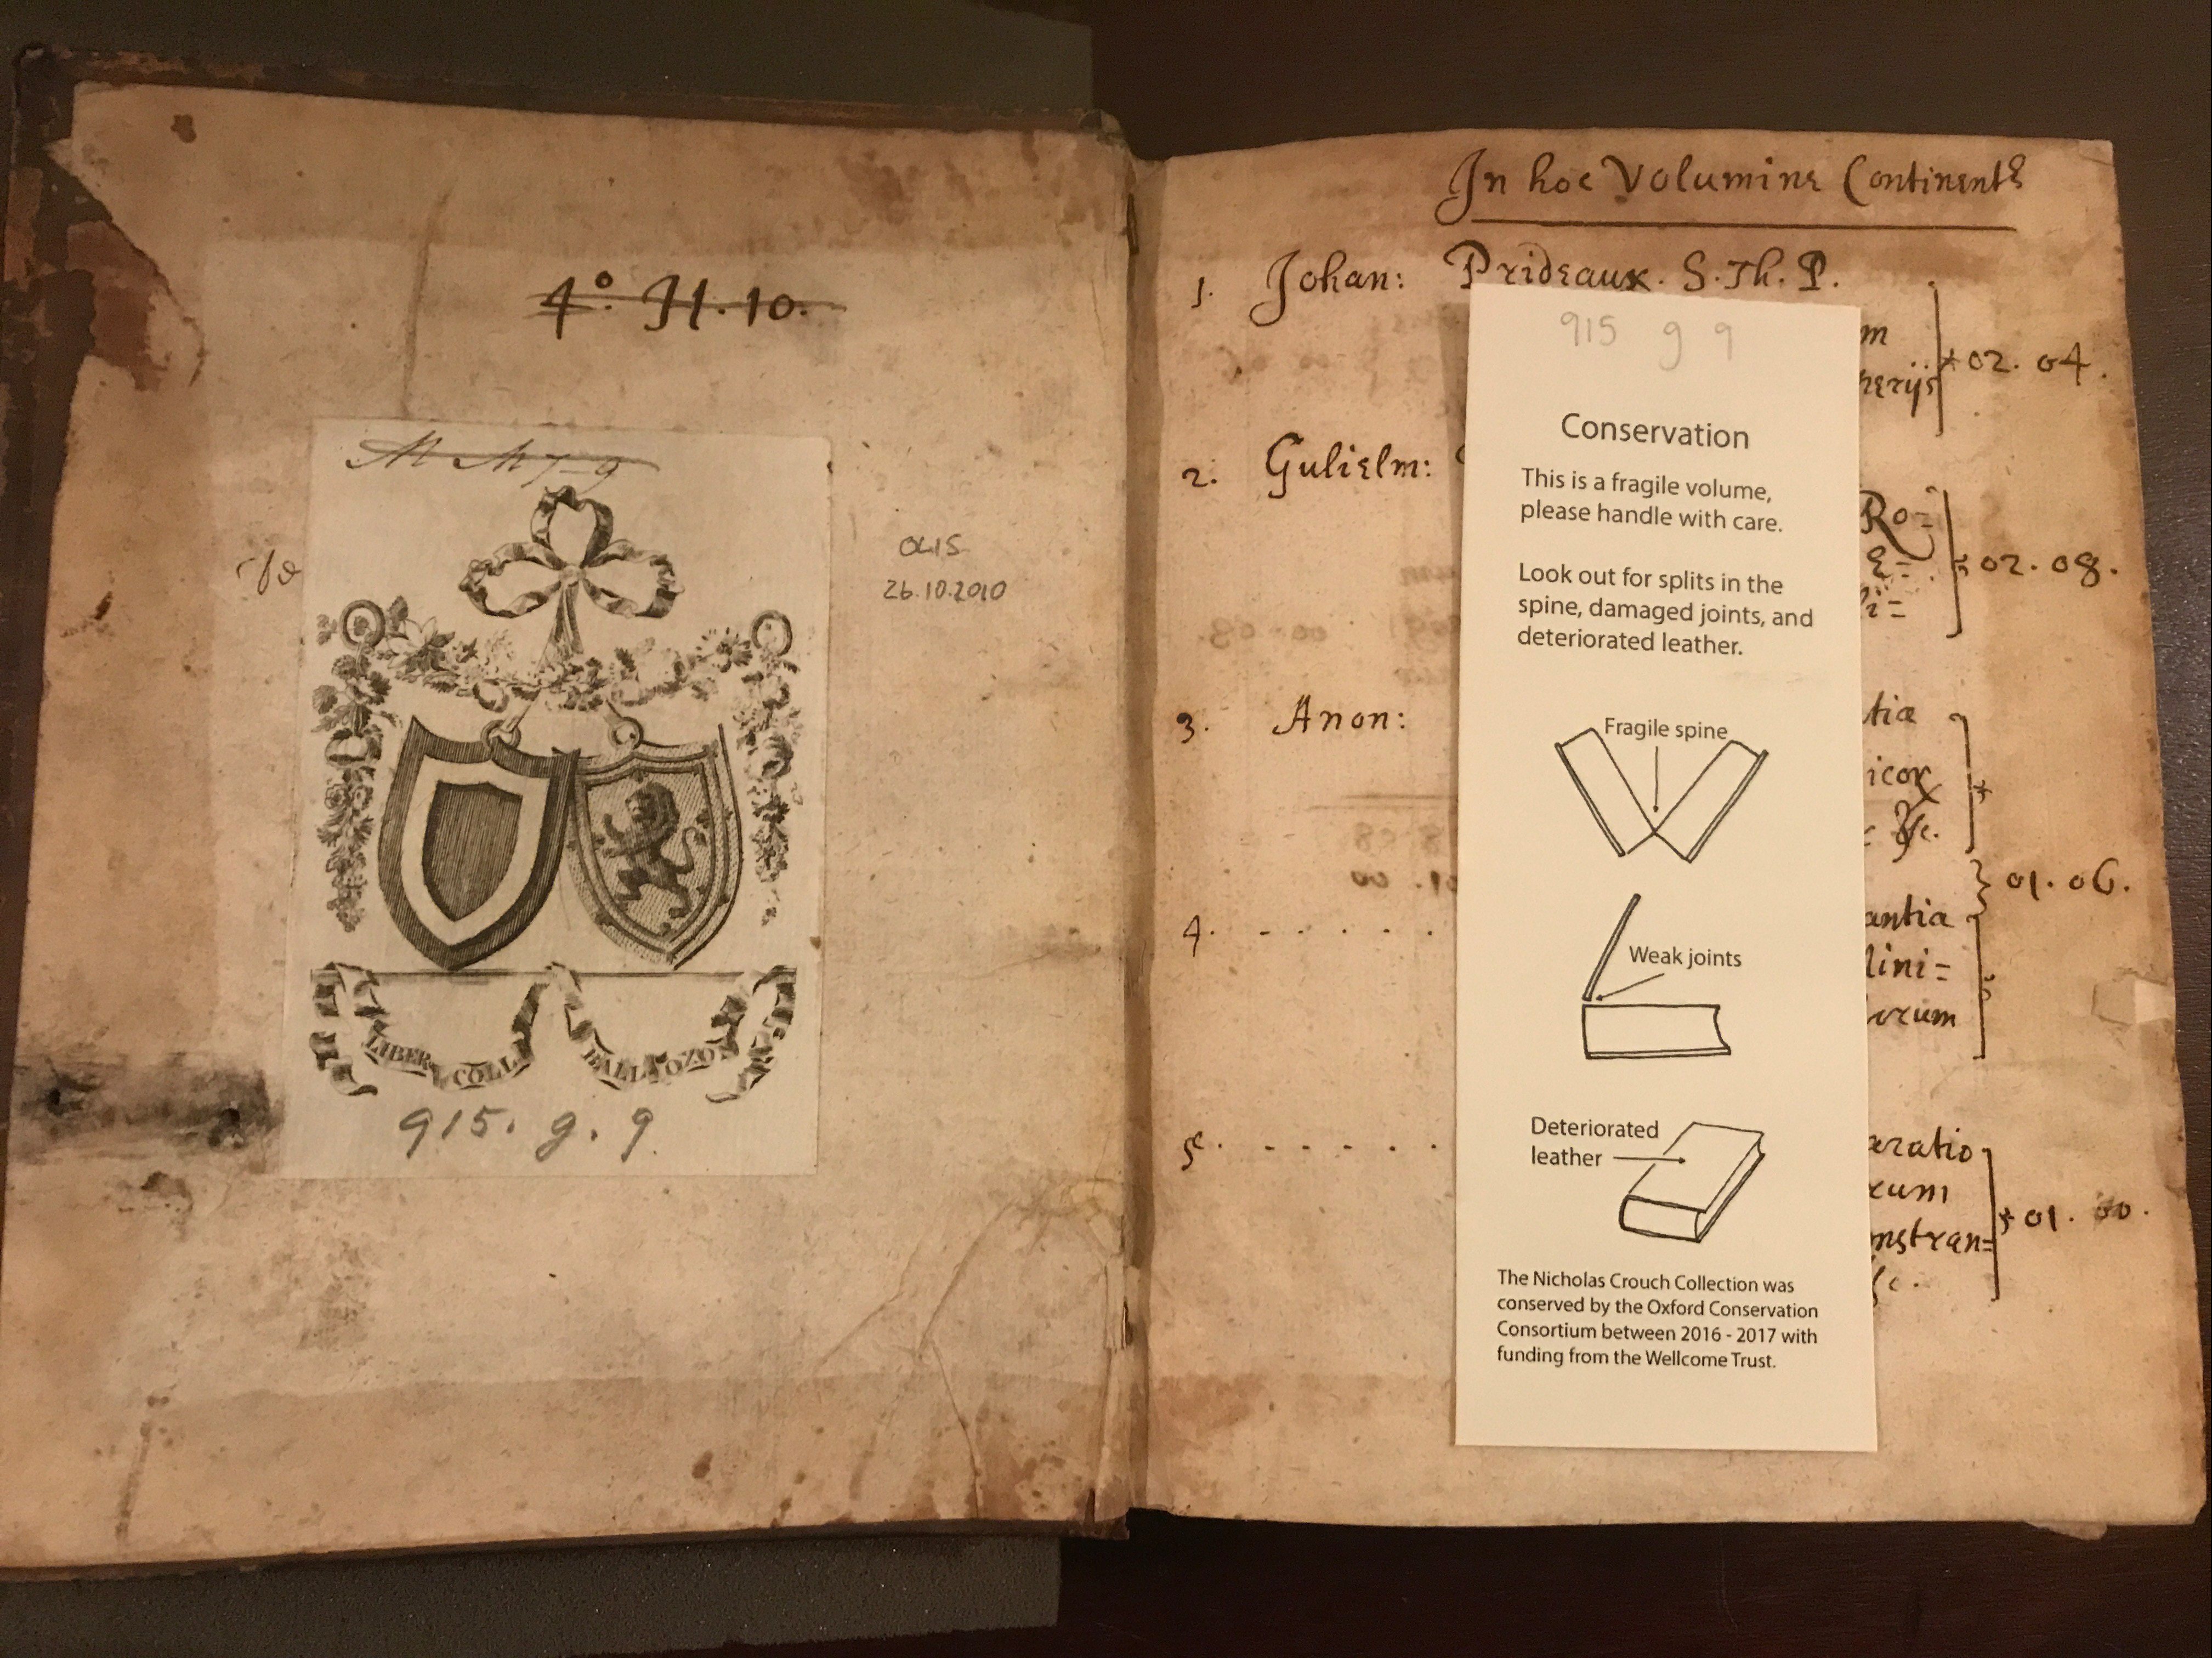 One of Crouch's Sammelband (Balliol Shelf 915 g 9) with conservation slip